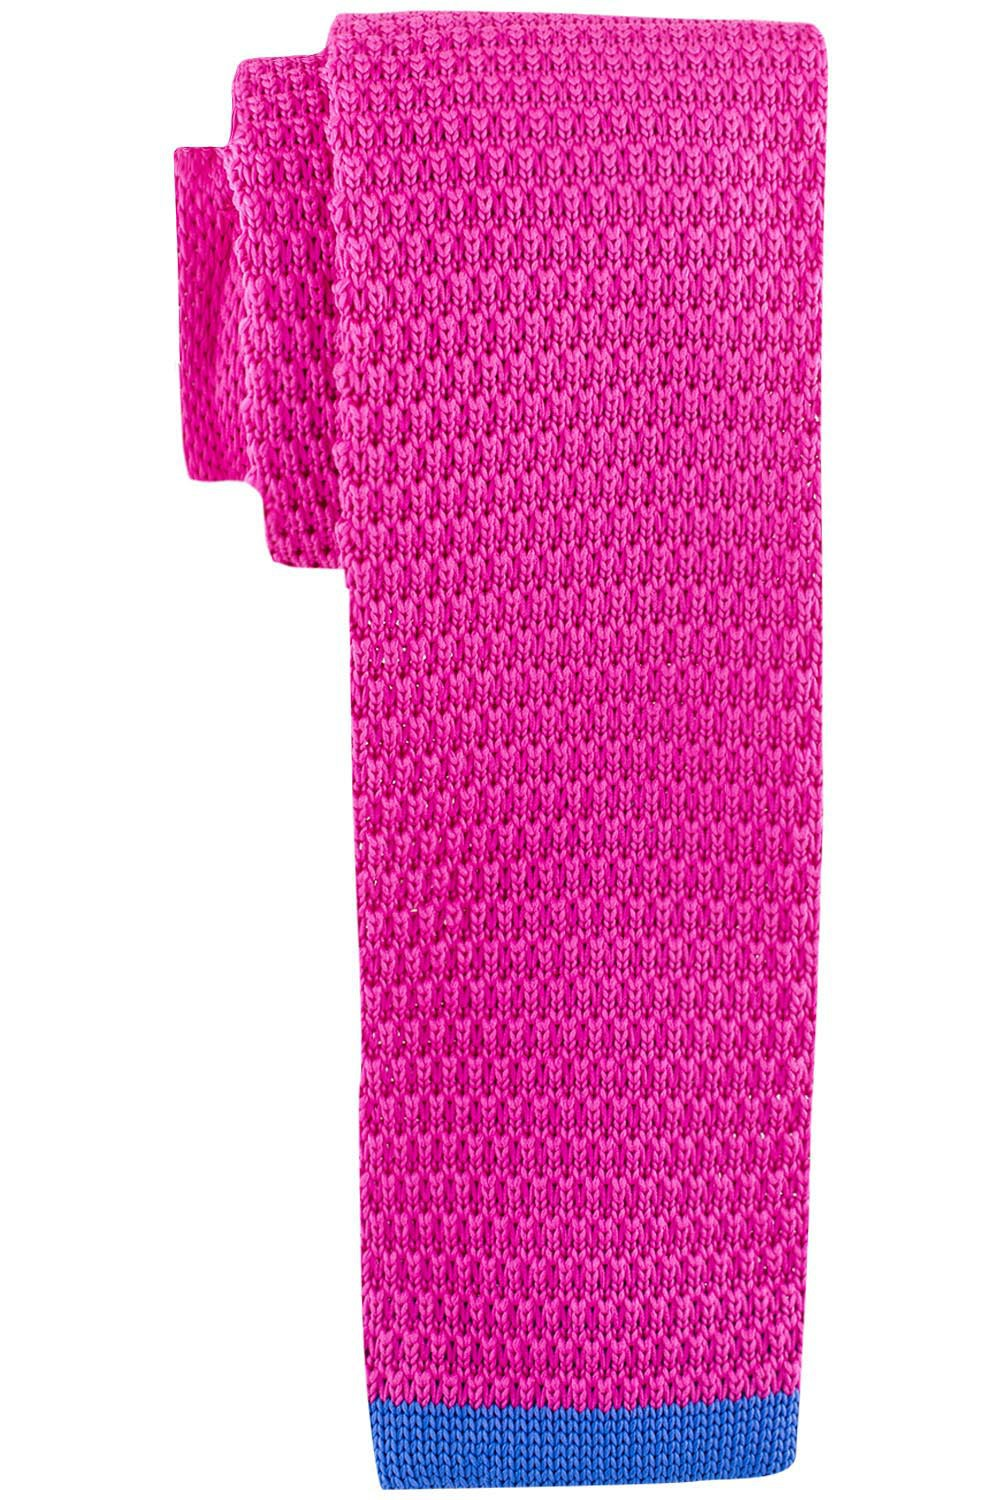 Wisteria Solid Pink Knitted Necktie by The Tie Hub